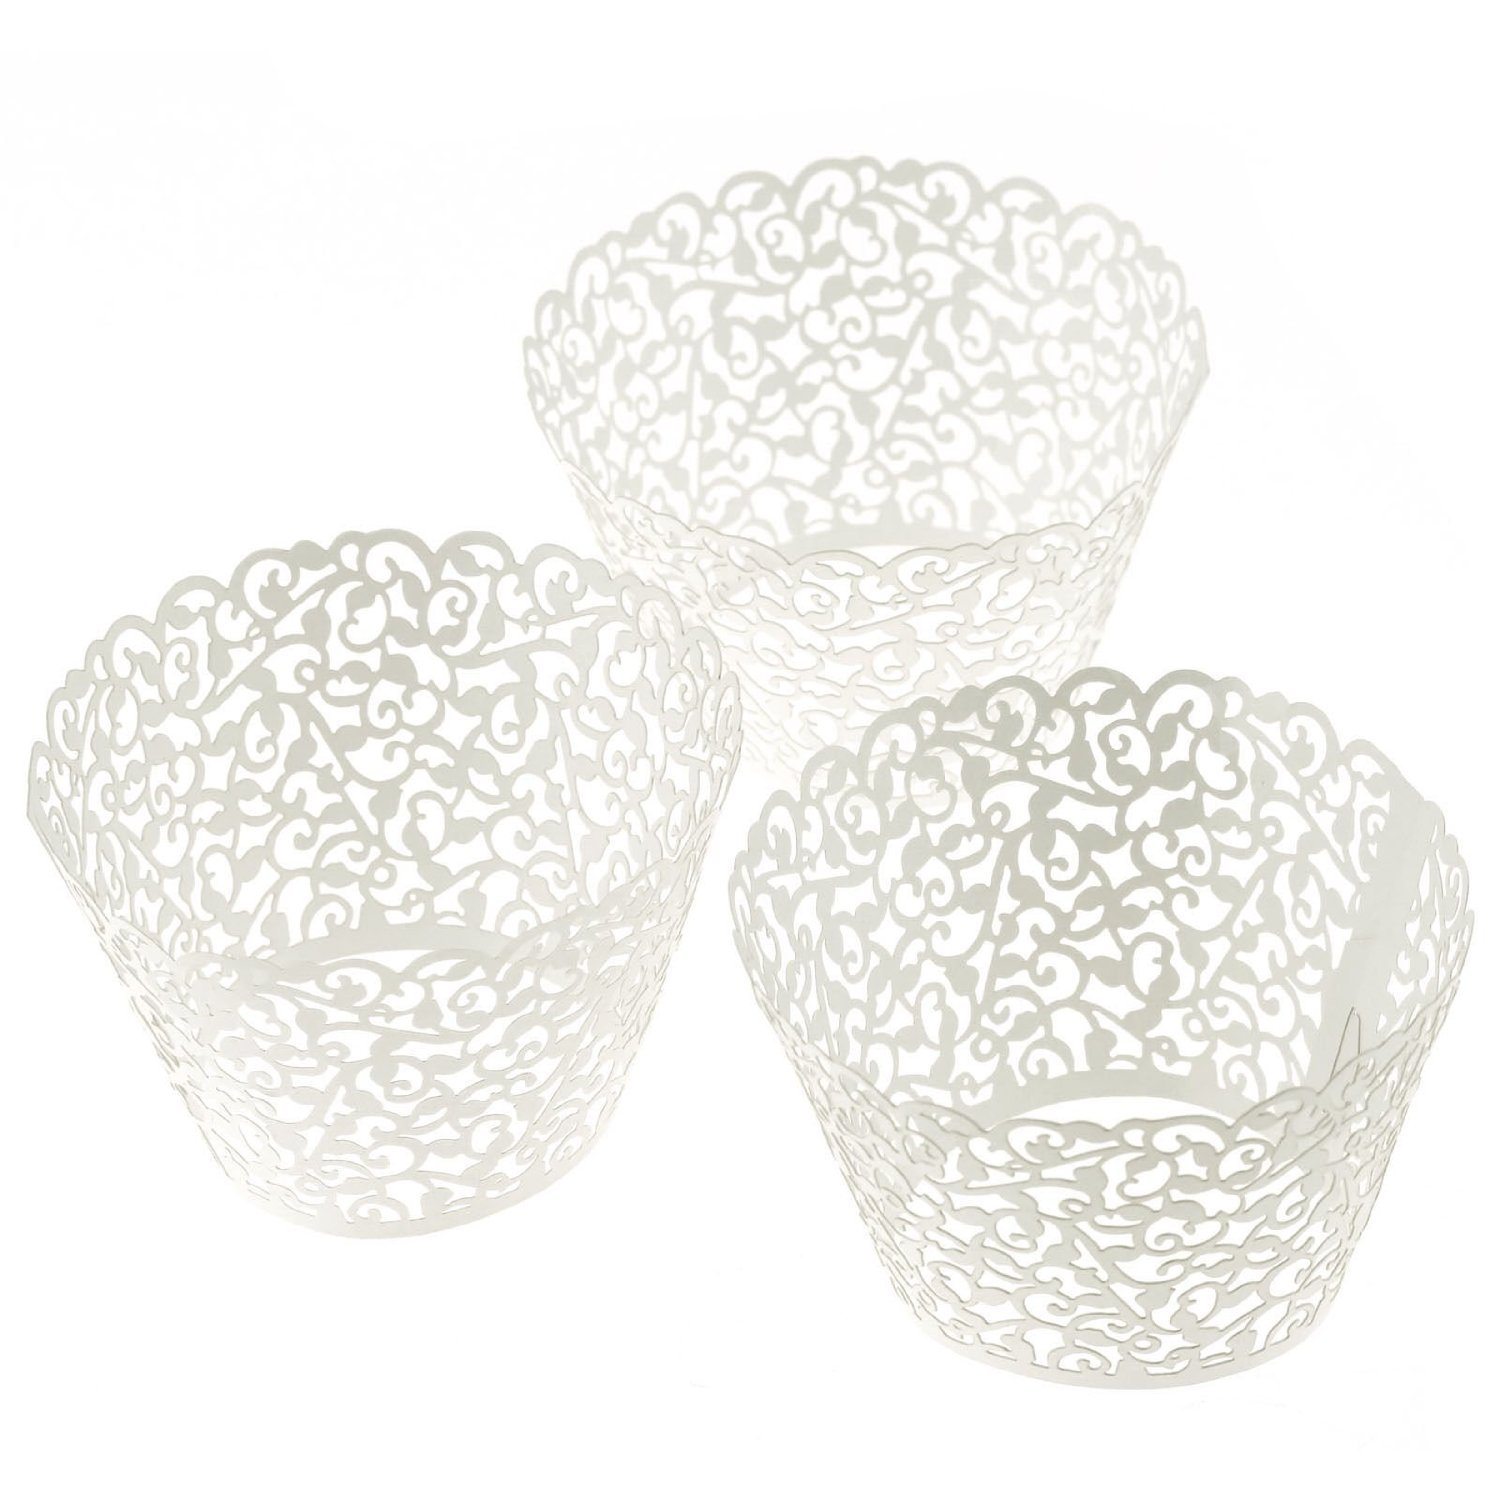 LEFV™ 24pcs Cupcake Wrapper Filigree Little Vine Lace Laser Cut Liner Baking Cup Muffin Case Trays Wraps Wedding Birthday Party Decoration White